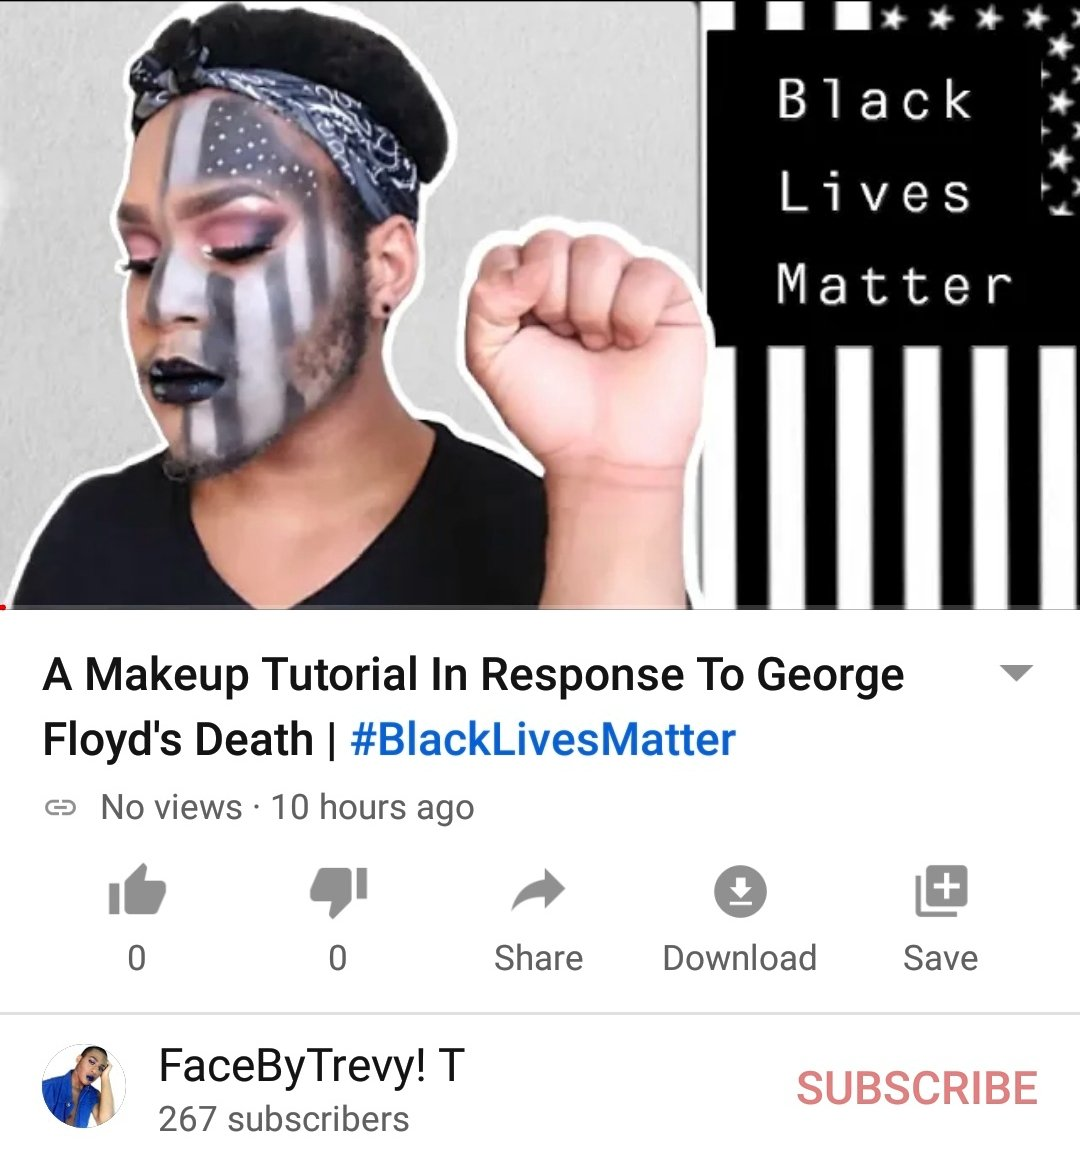 Click the link to watch my new upload. R.I.P #georgefloyd and may justice be served. Subscribe & Share! https://youtu.be/HejCG7TJTVU   #BlackLivesMatter #JusticeForGeorgeFlyod #BlackOut #BlackOutDay2020 #BlackPower #BlacklivesMaters #support #Malemua #makeupart #makeuptutorial #beautypic.twitter.com/nHn5gizHTE